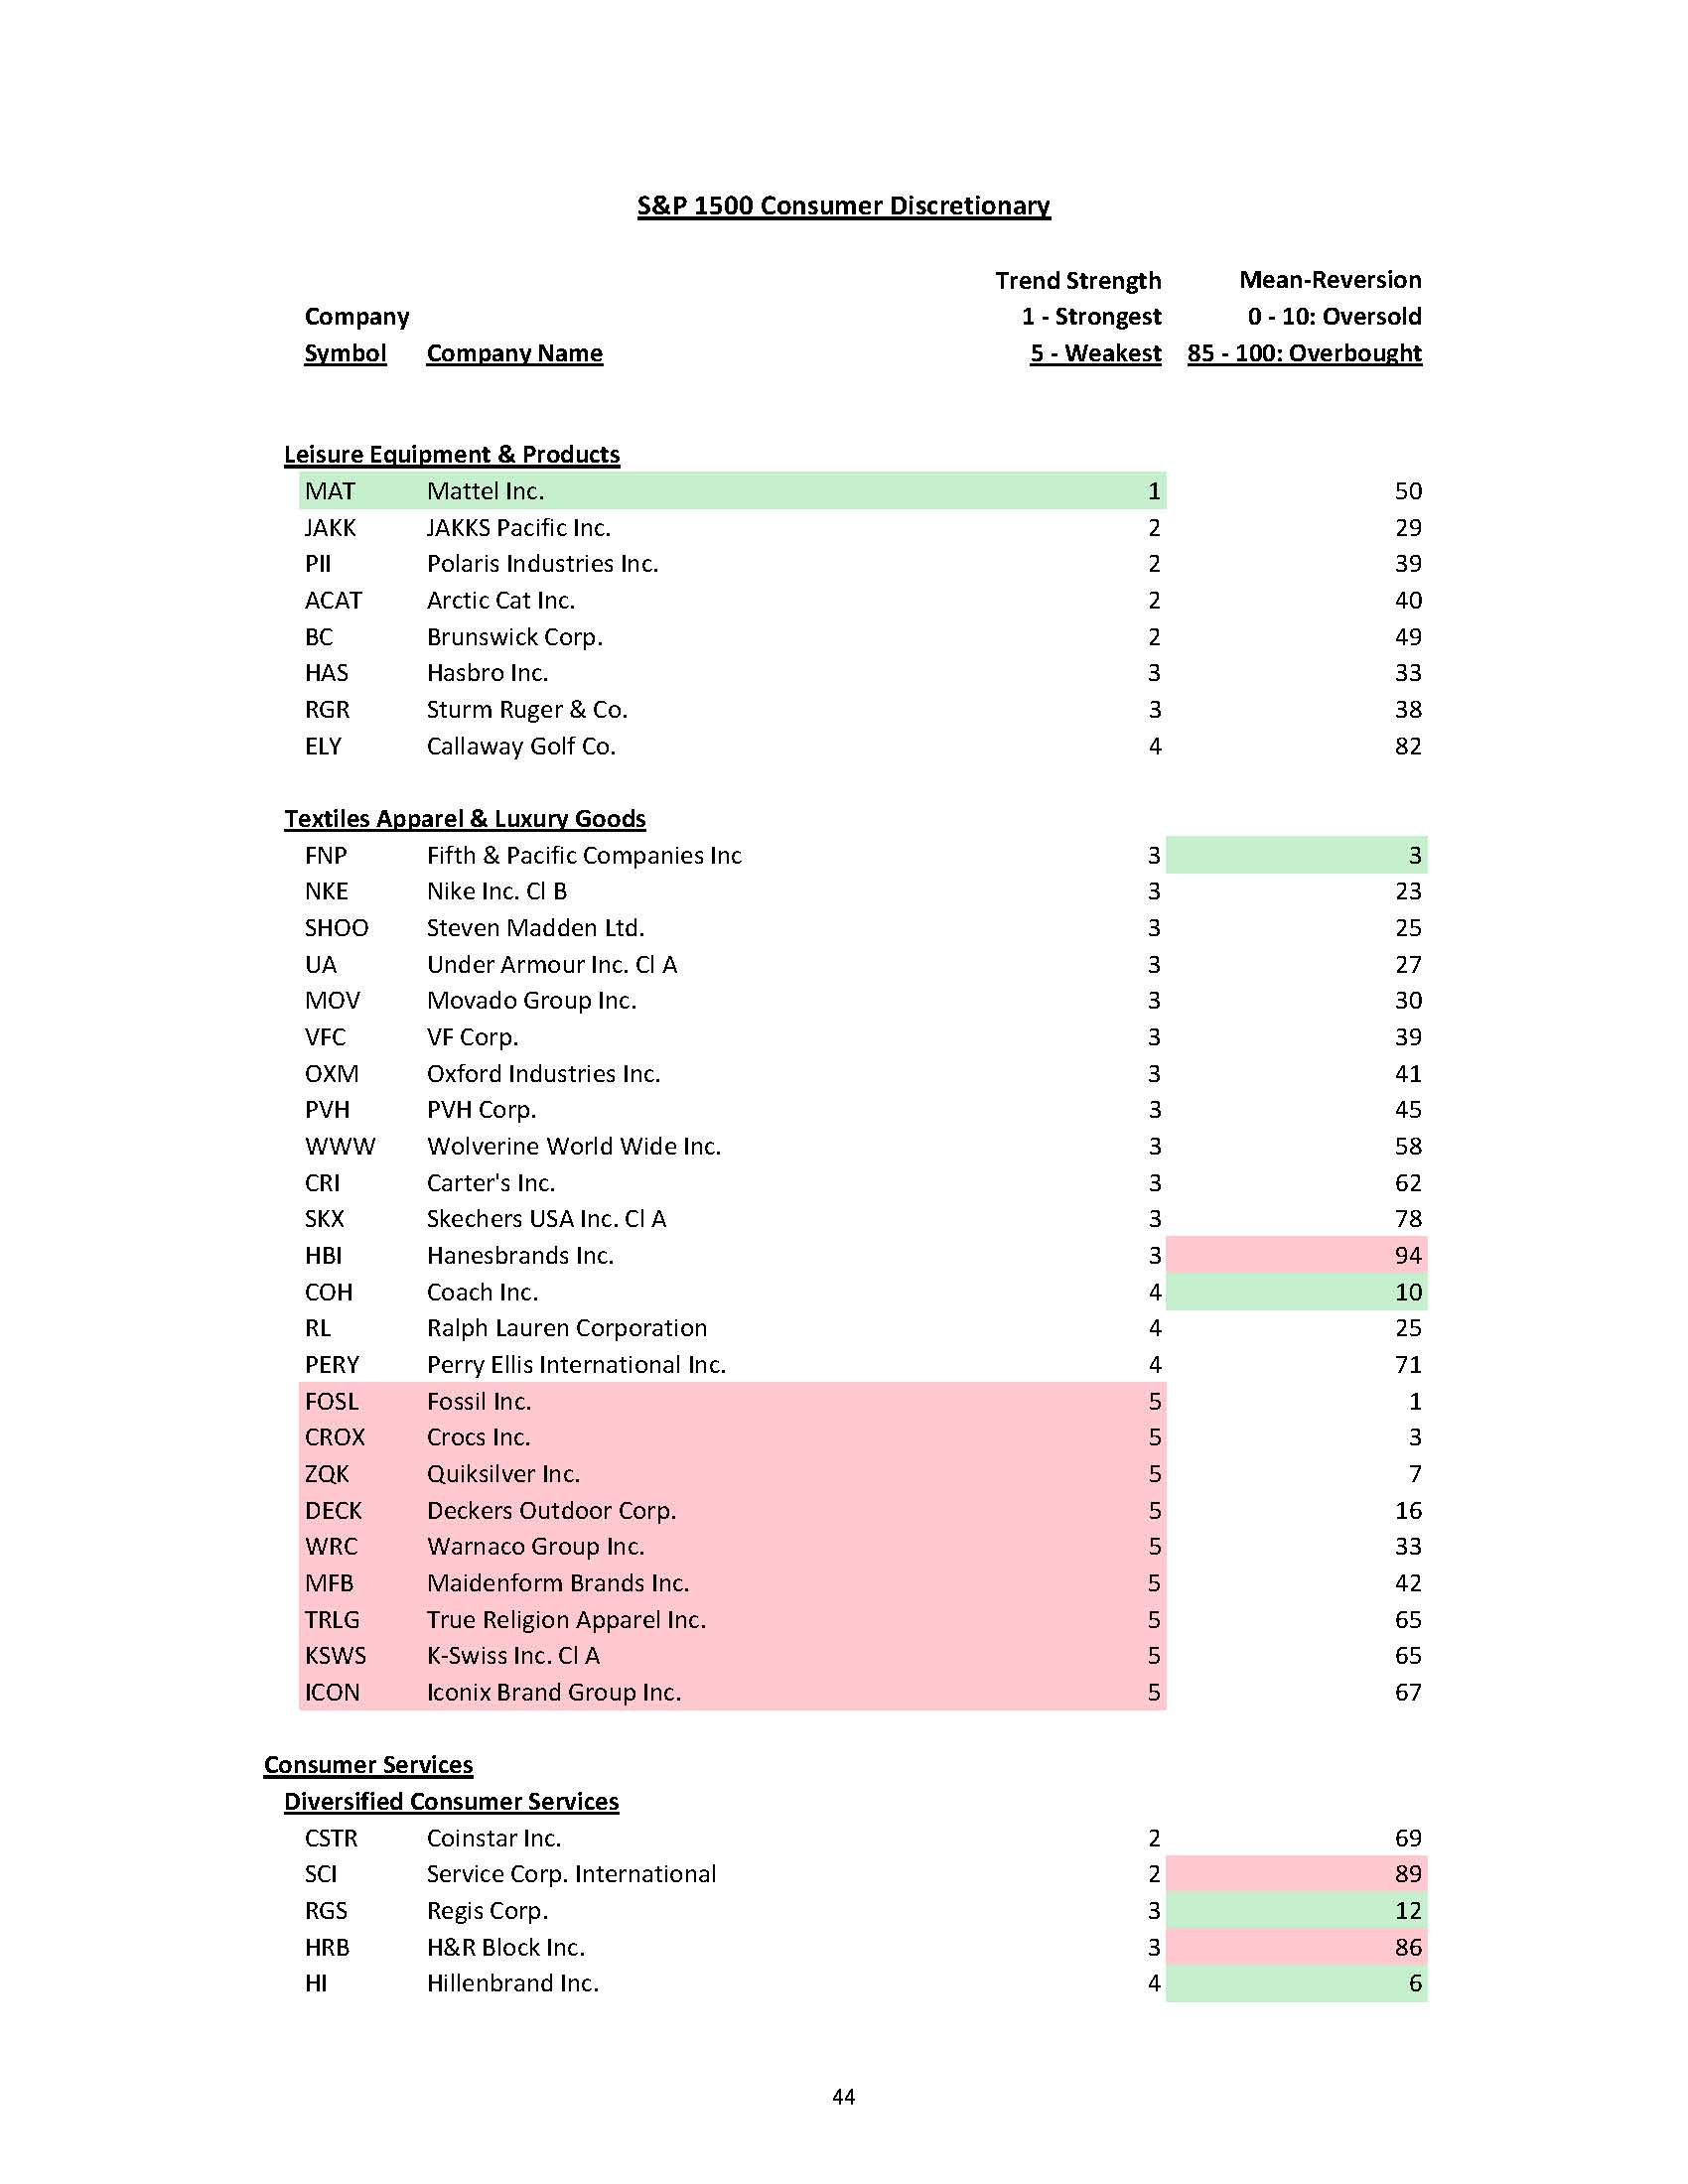 Consumer Discretionary Deep-Dive 07.12.12_Page_44